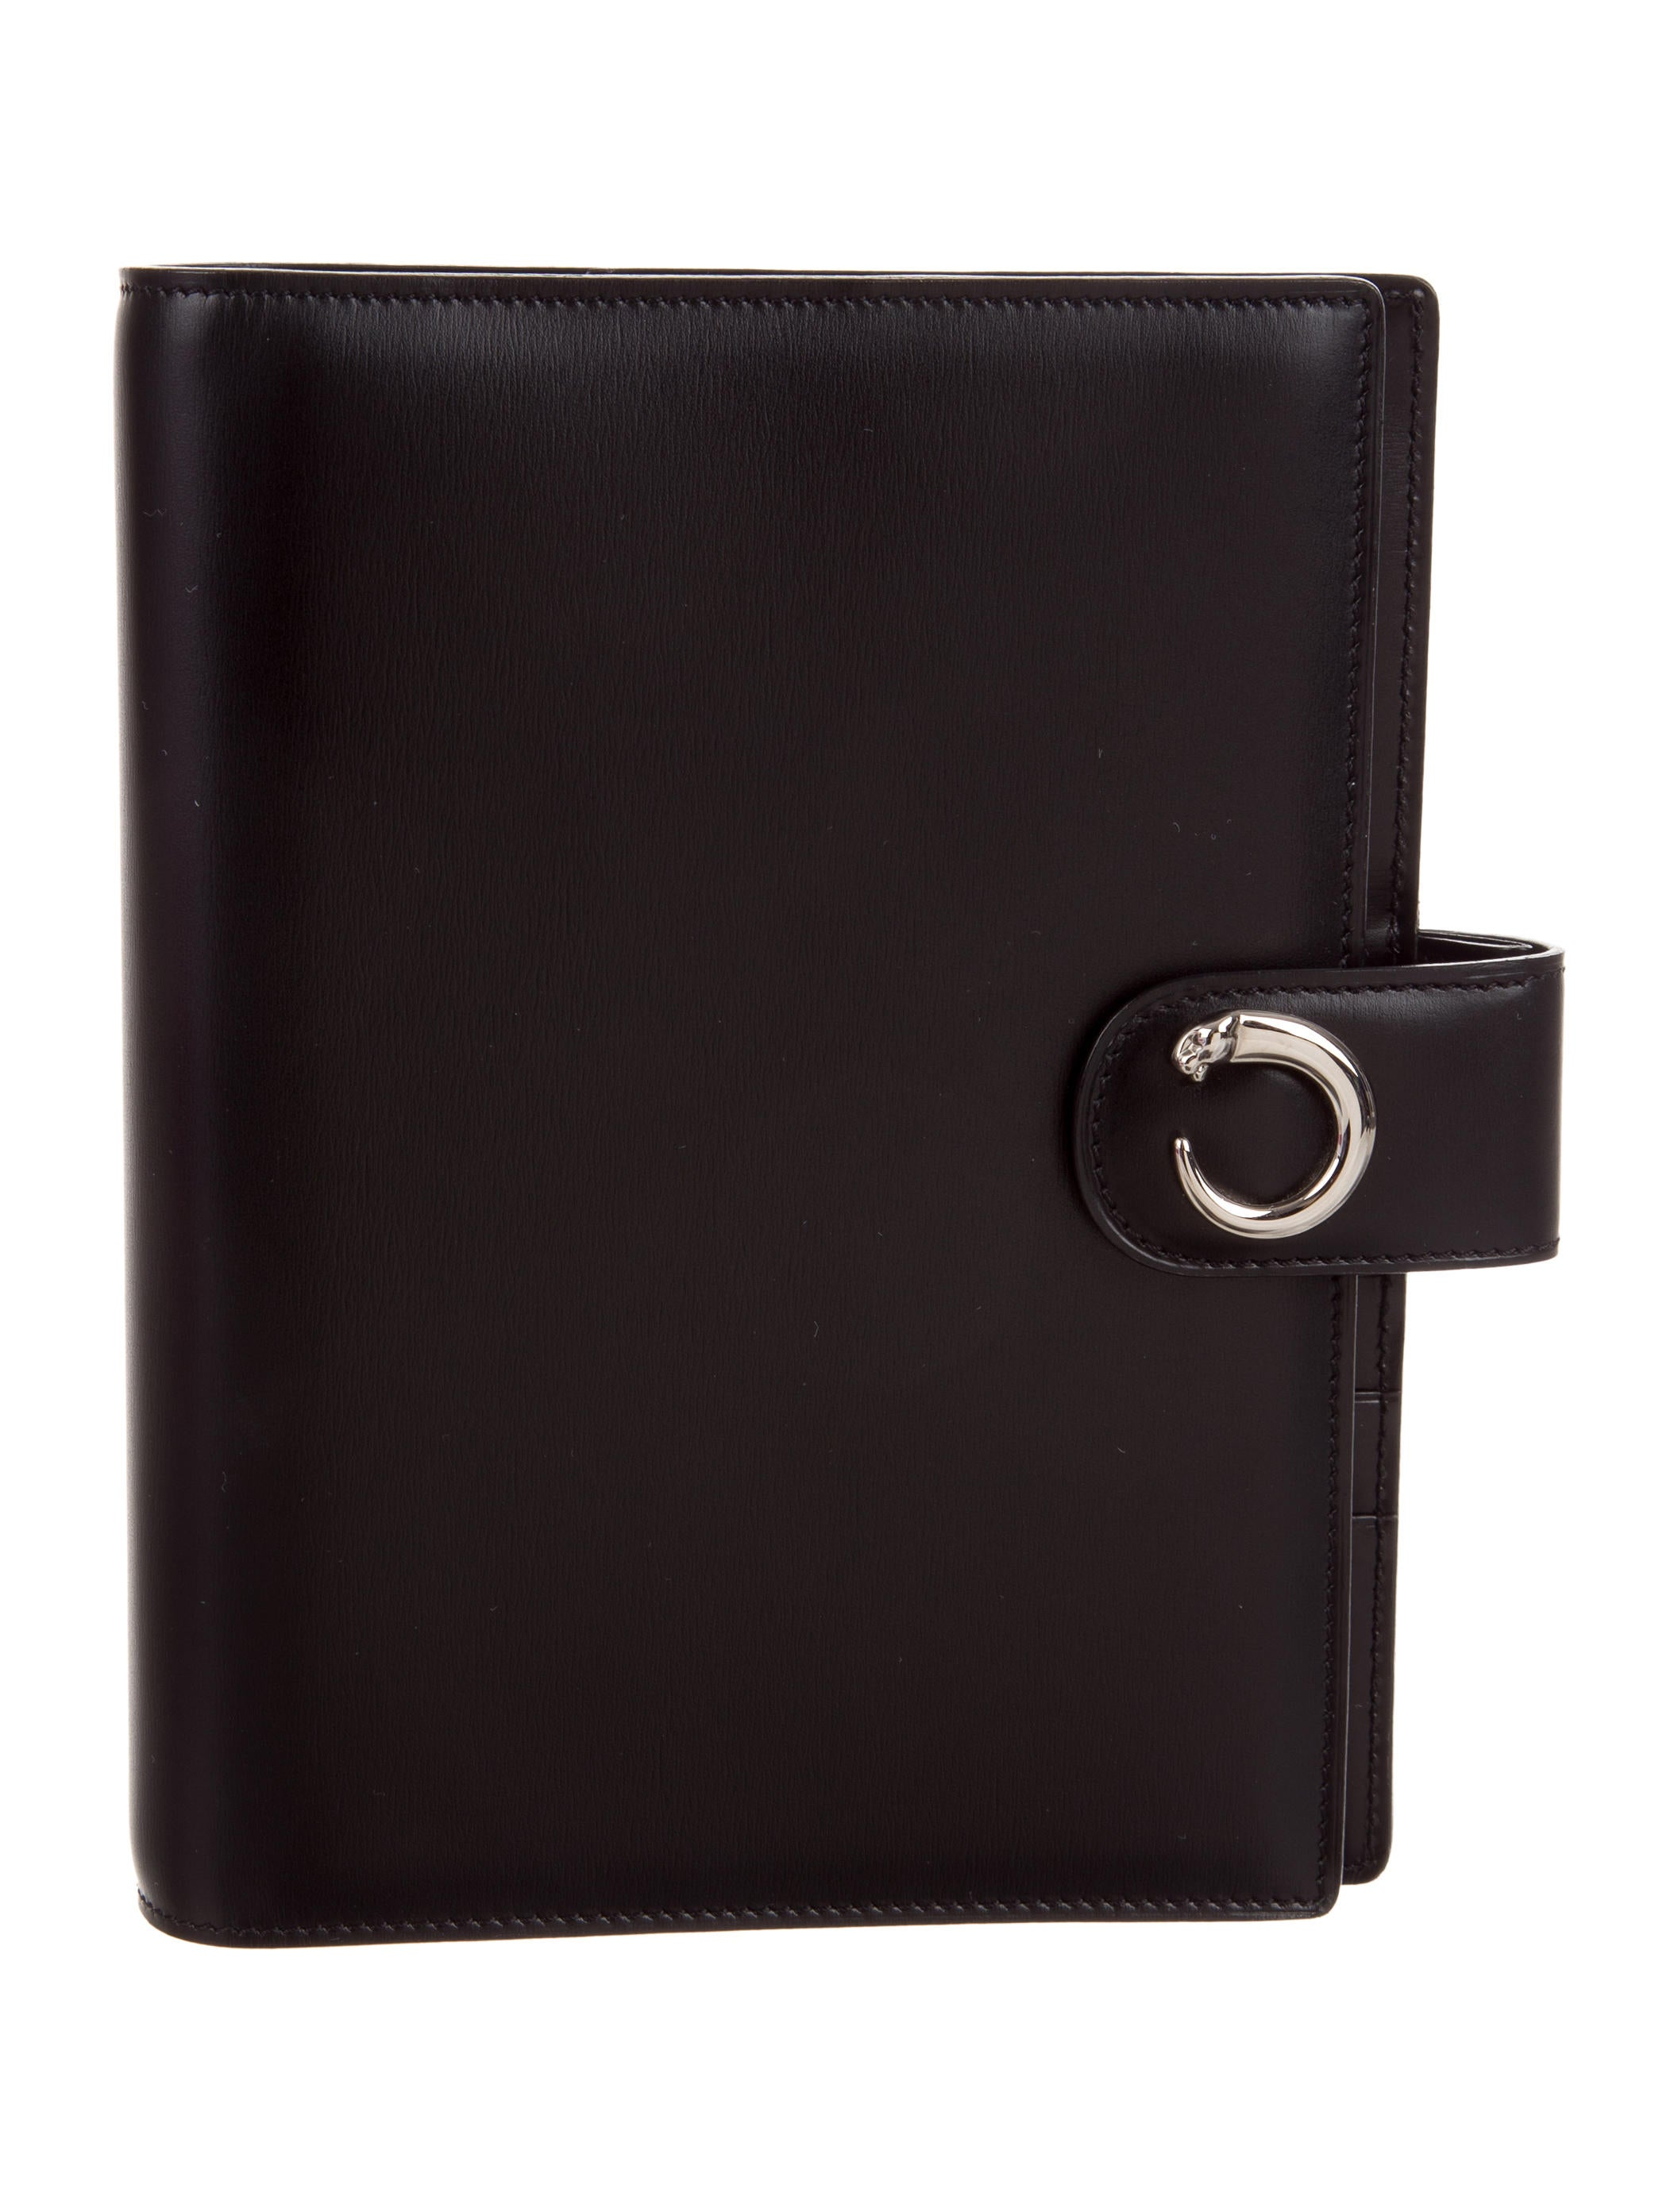 Cartier panthere agenda cover decor and accessories for Home decor accessories